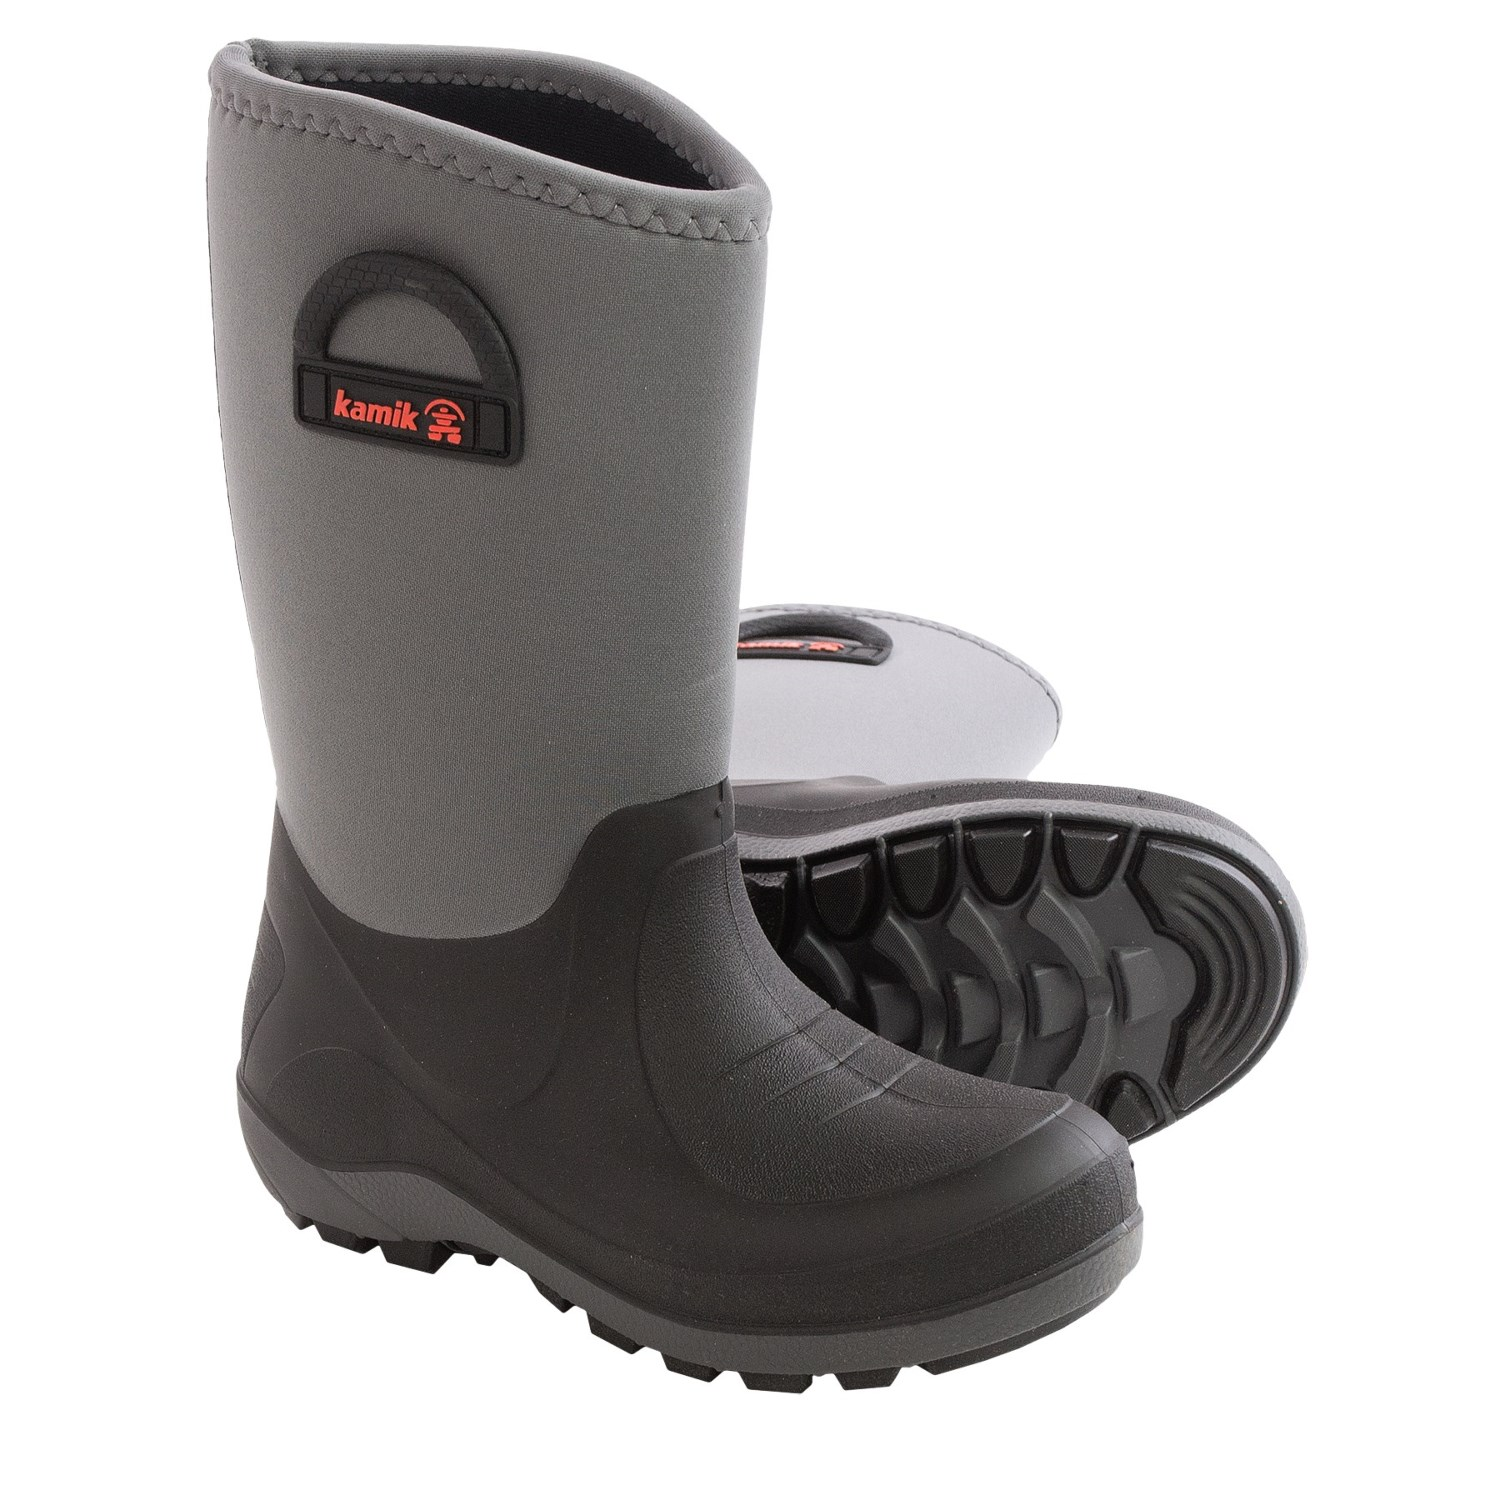 Kamik Bluster Snow Boots (For Little and Big Kids) - Save 37%